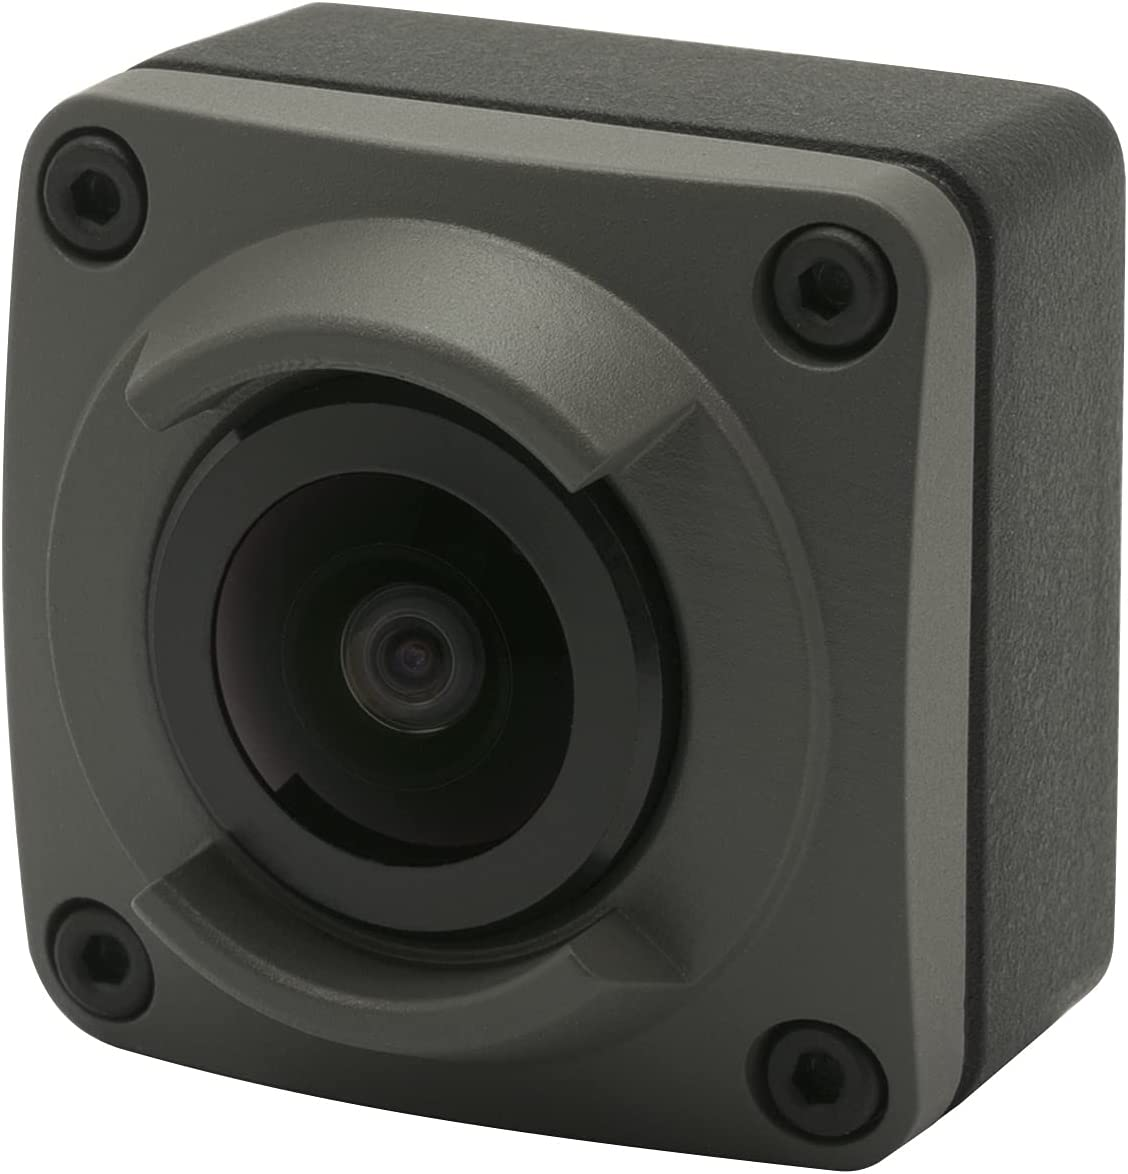 Watec, WAT-05U2M Wide Angle, Low Light, Color, Miniature USB Camera, Computer Accessory, Cell Phone Accessory, Body Camera, Action Camera, Water Resistant